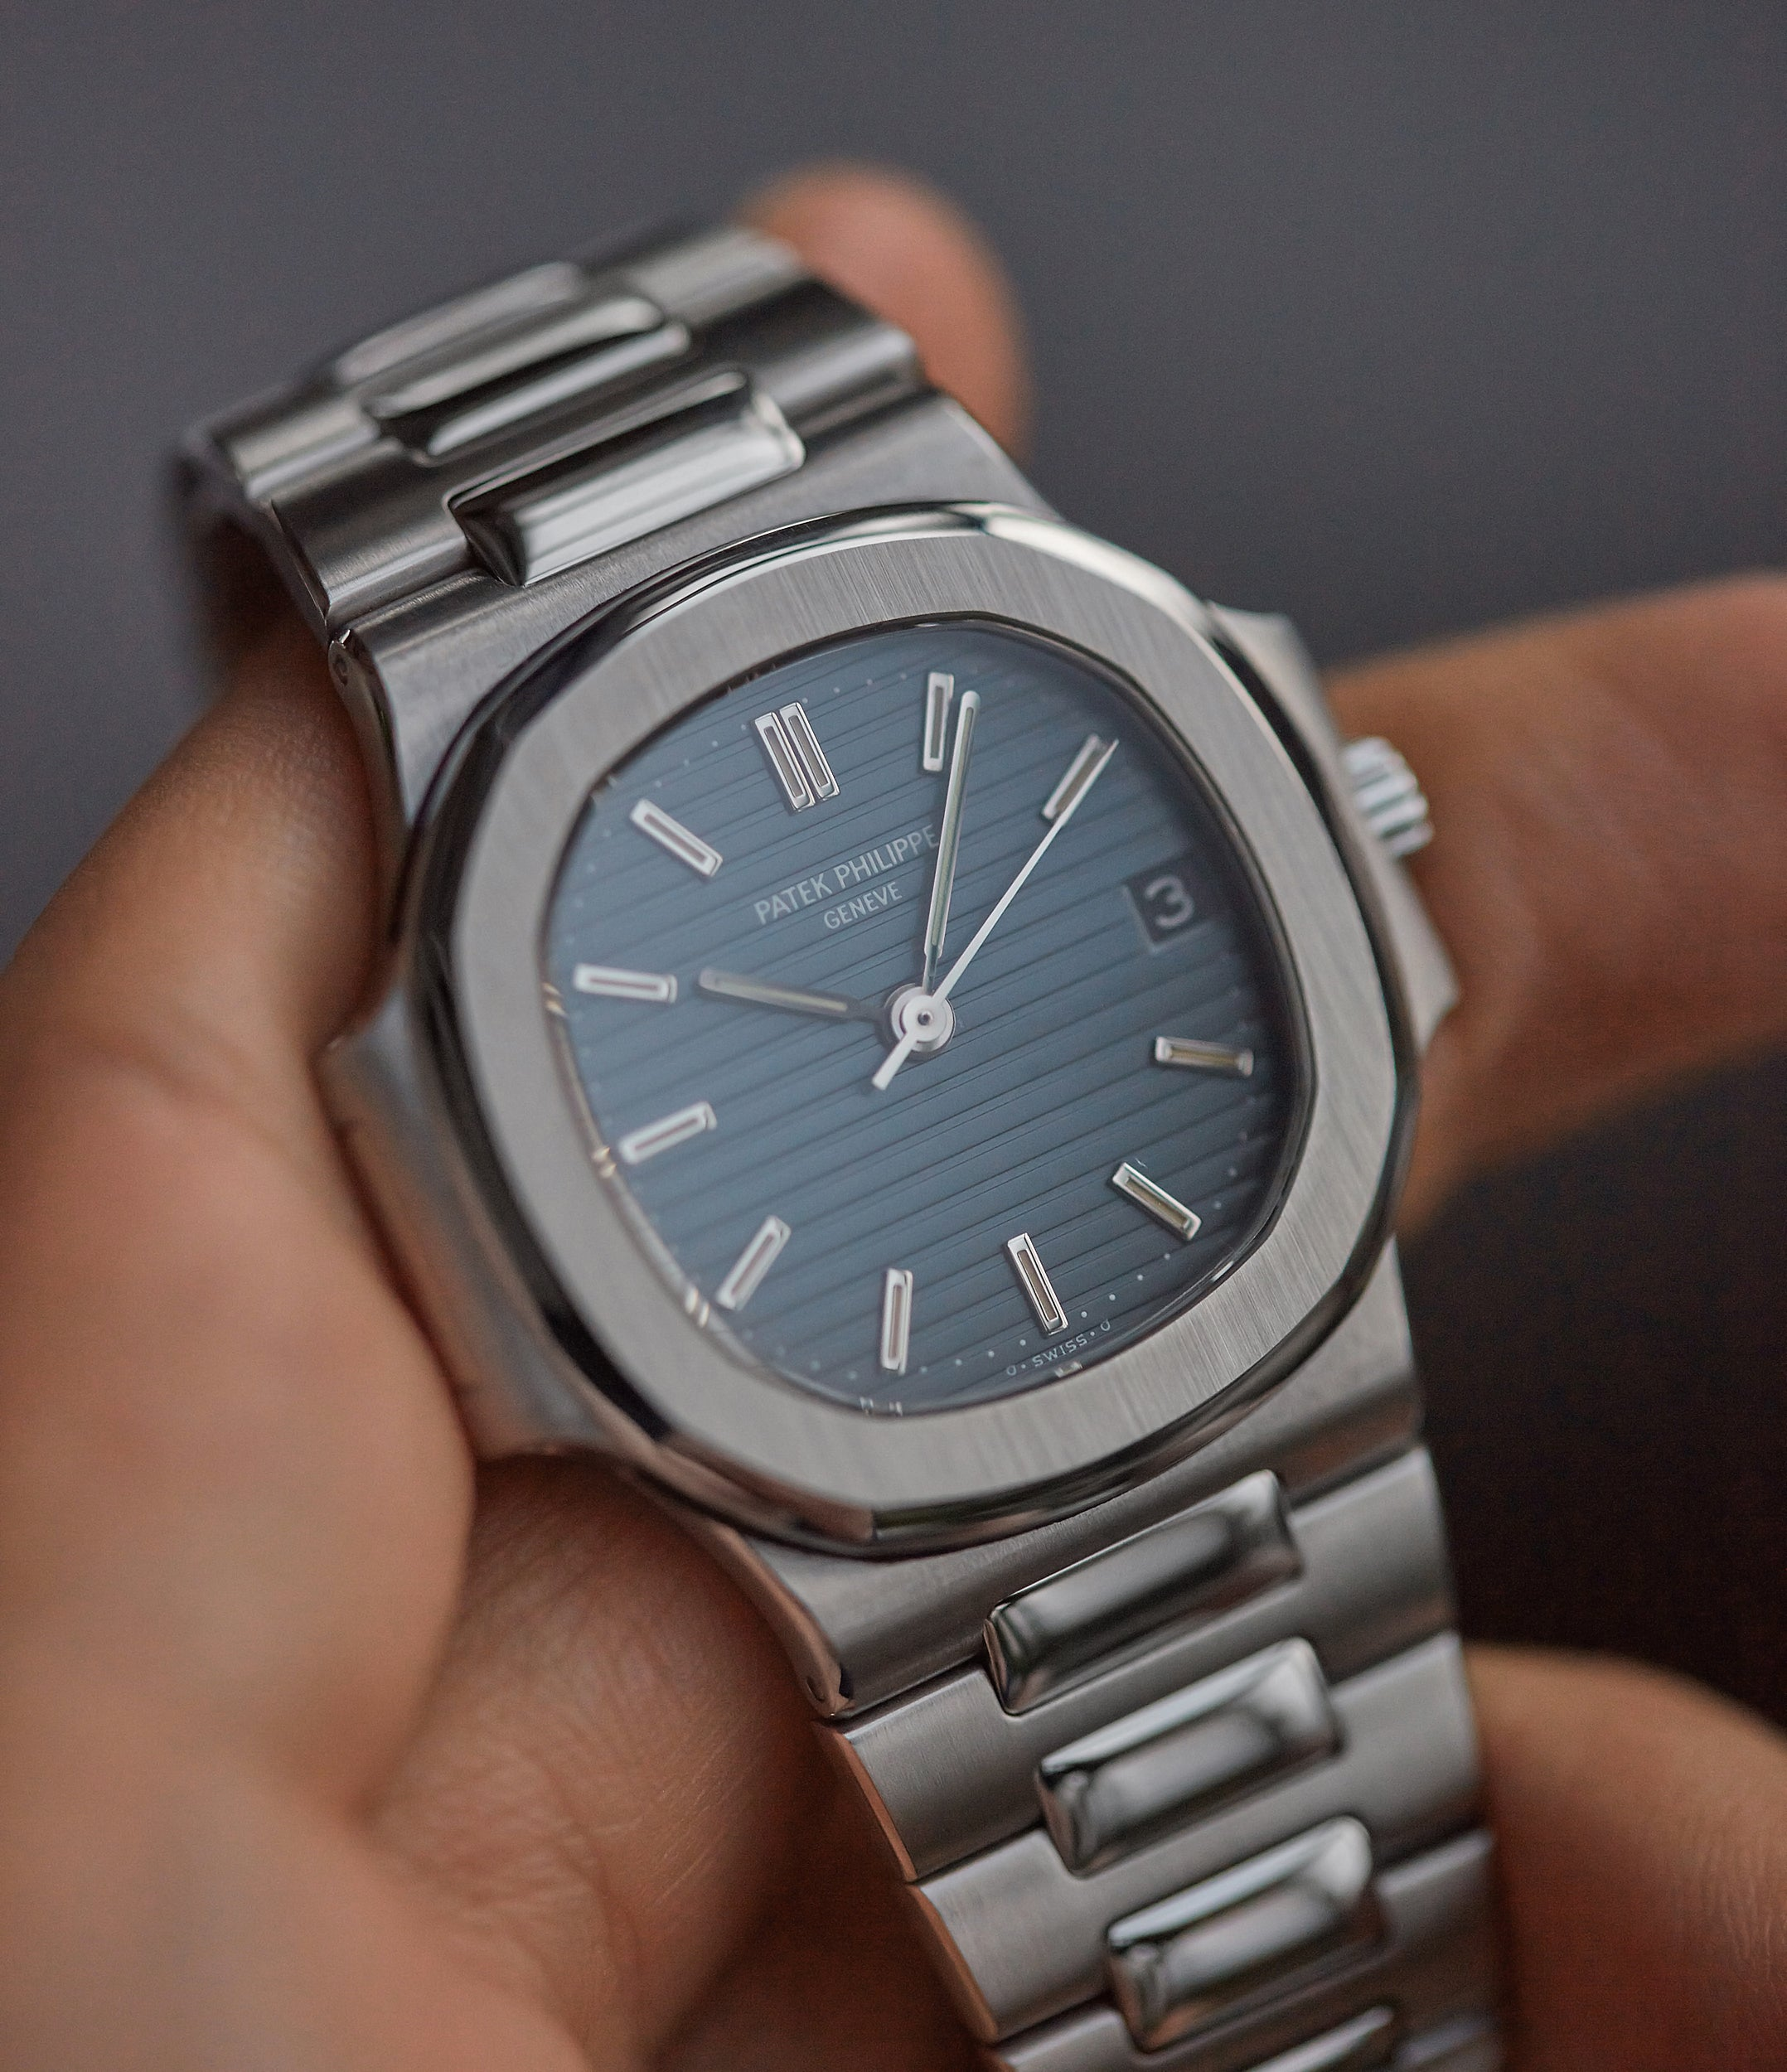 shop pre-owned Patek Philippe Nautilus 3800 Sigma dial steel luxury sports watch for sale online A Collected Man London UK specialist rare watches